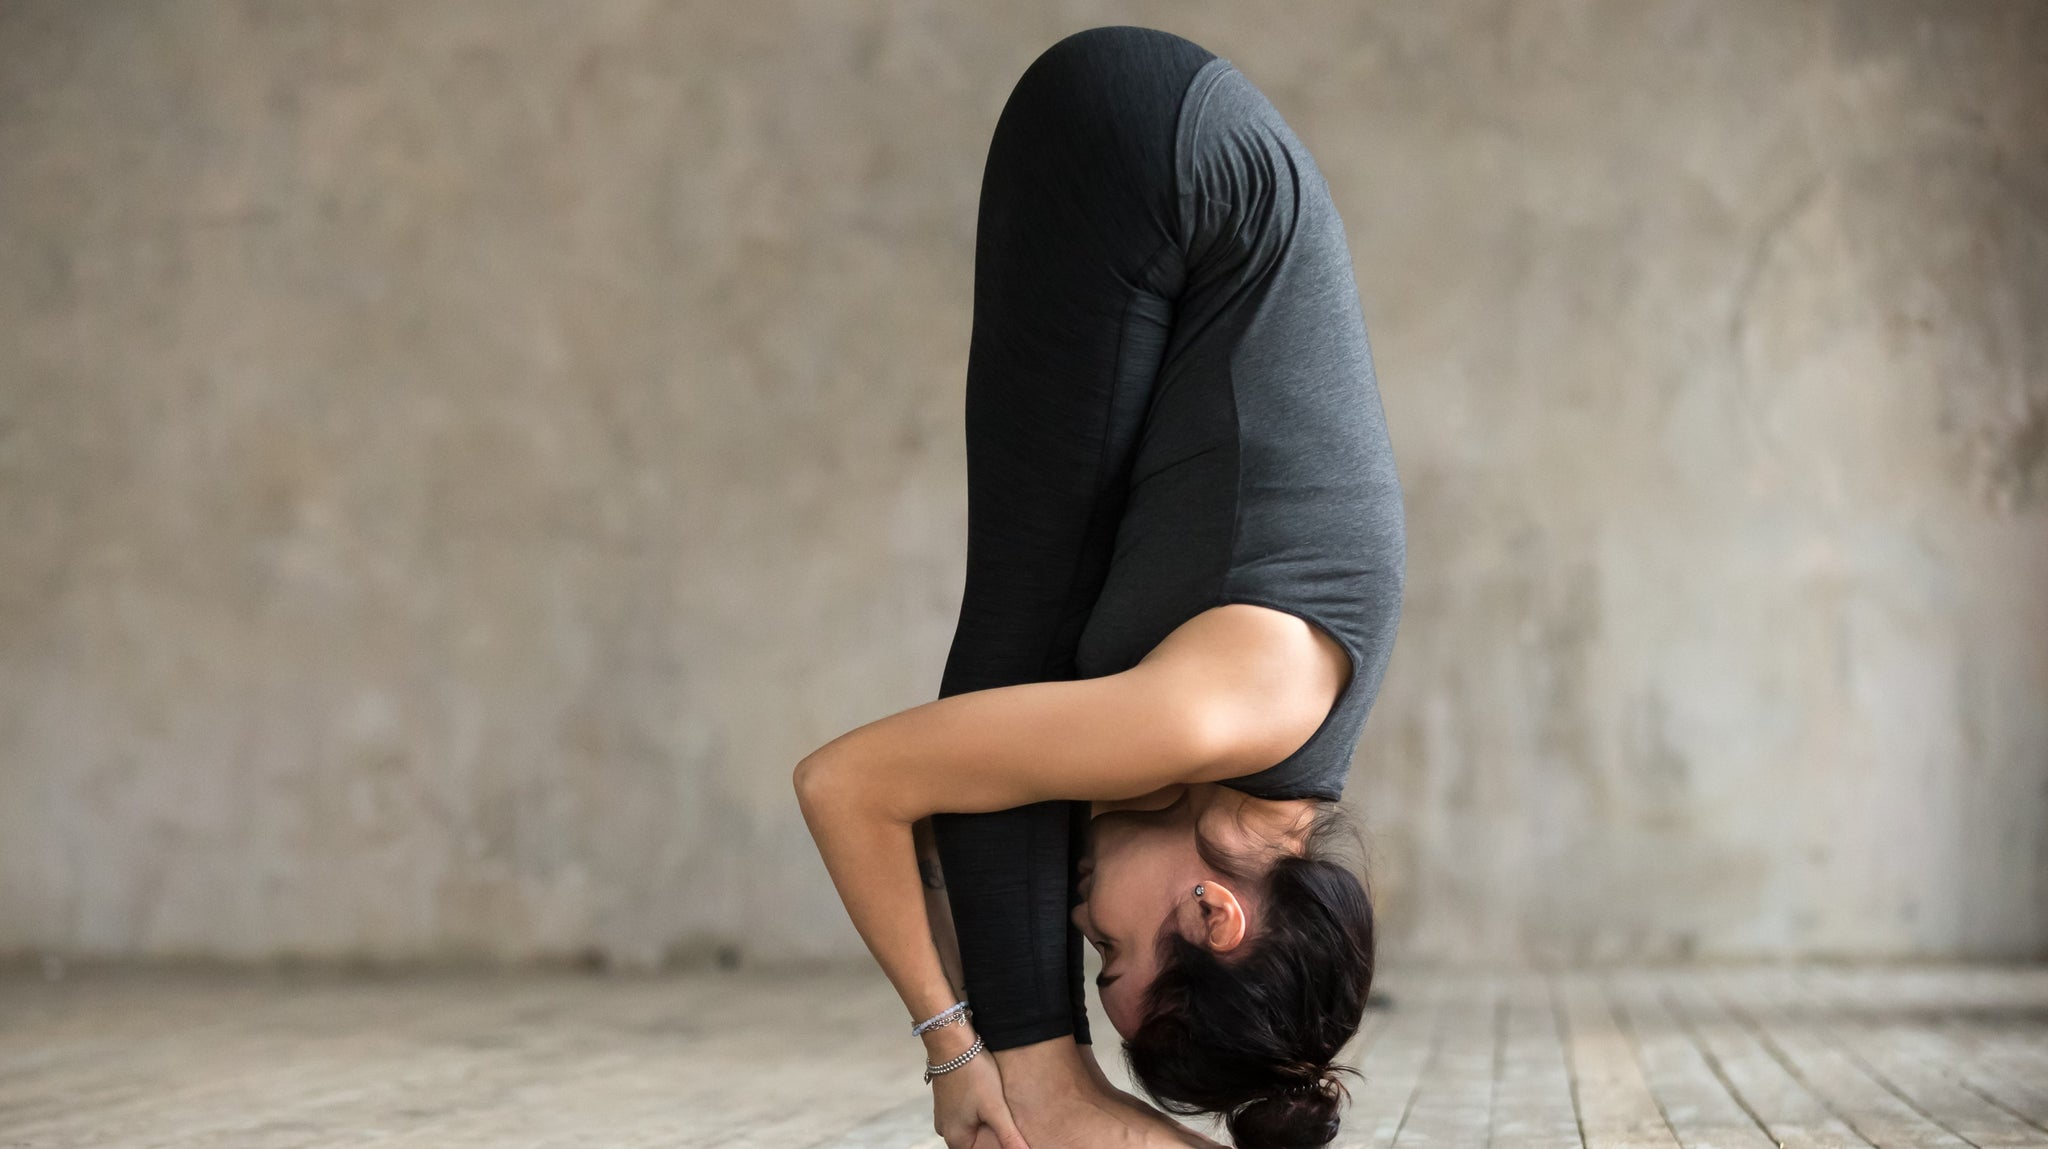 Attractive woman performing Uttanasana standing forward bend yoga pose.